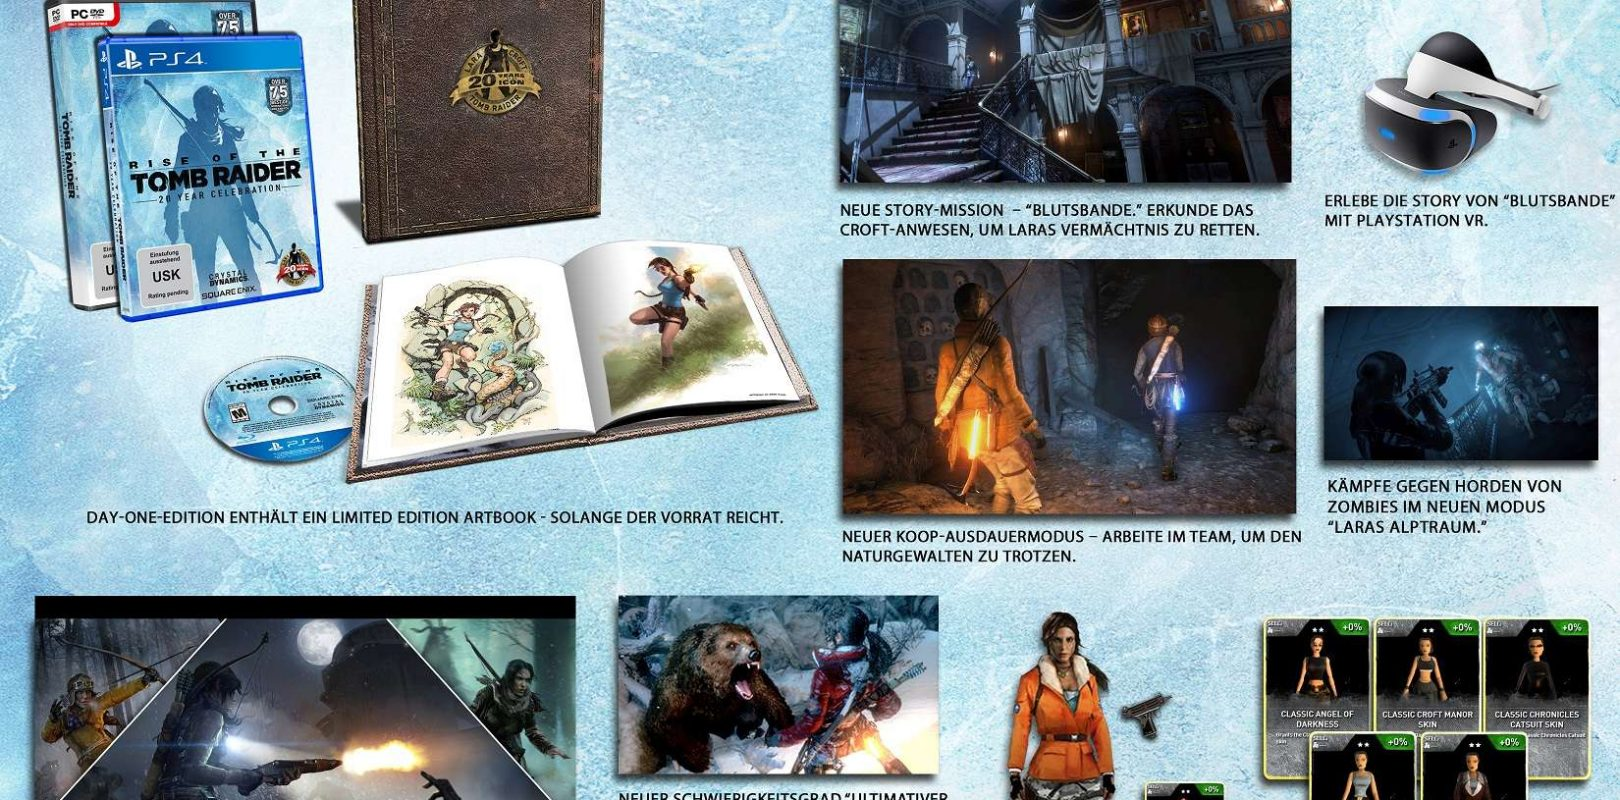 Rise Of The Tomb Raider 20 Jahriges Jubilaum Hier Ist Der Launch Trailer Mde Gaming